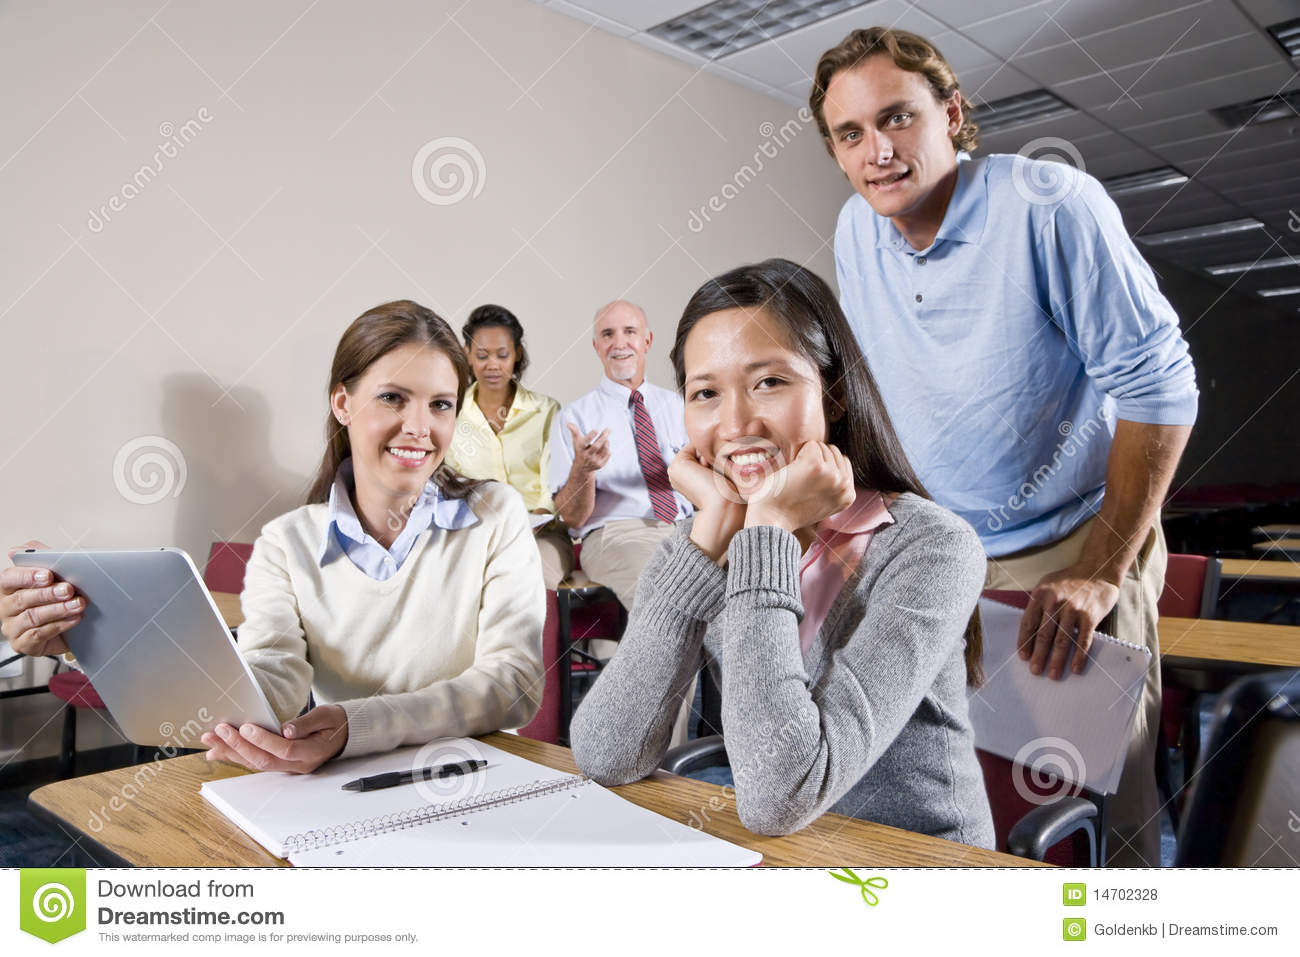 Group of college students and teacher in class